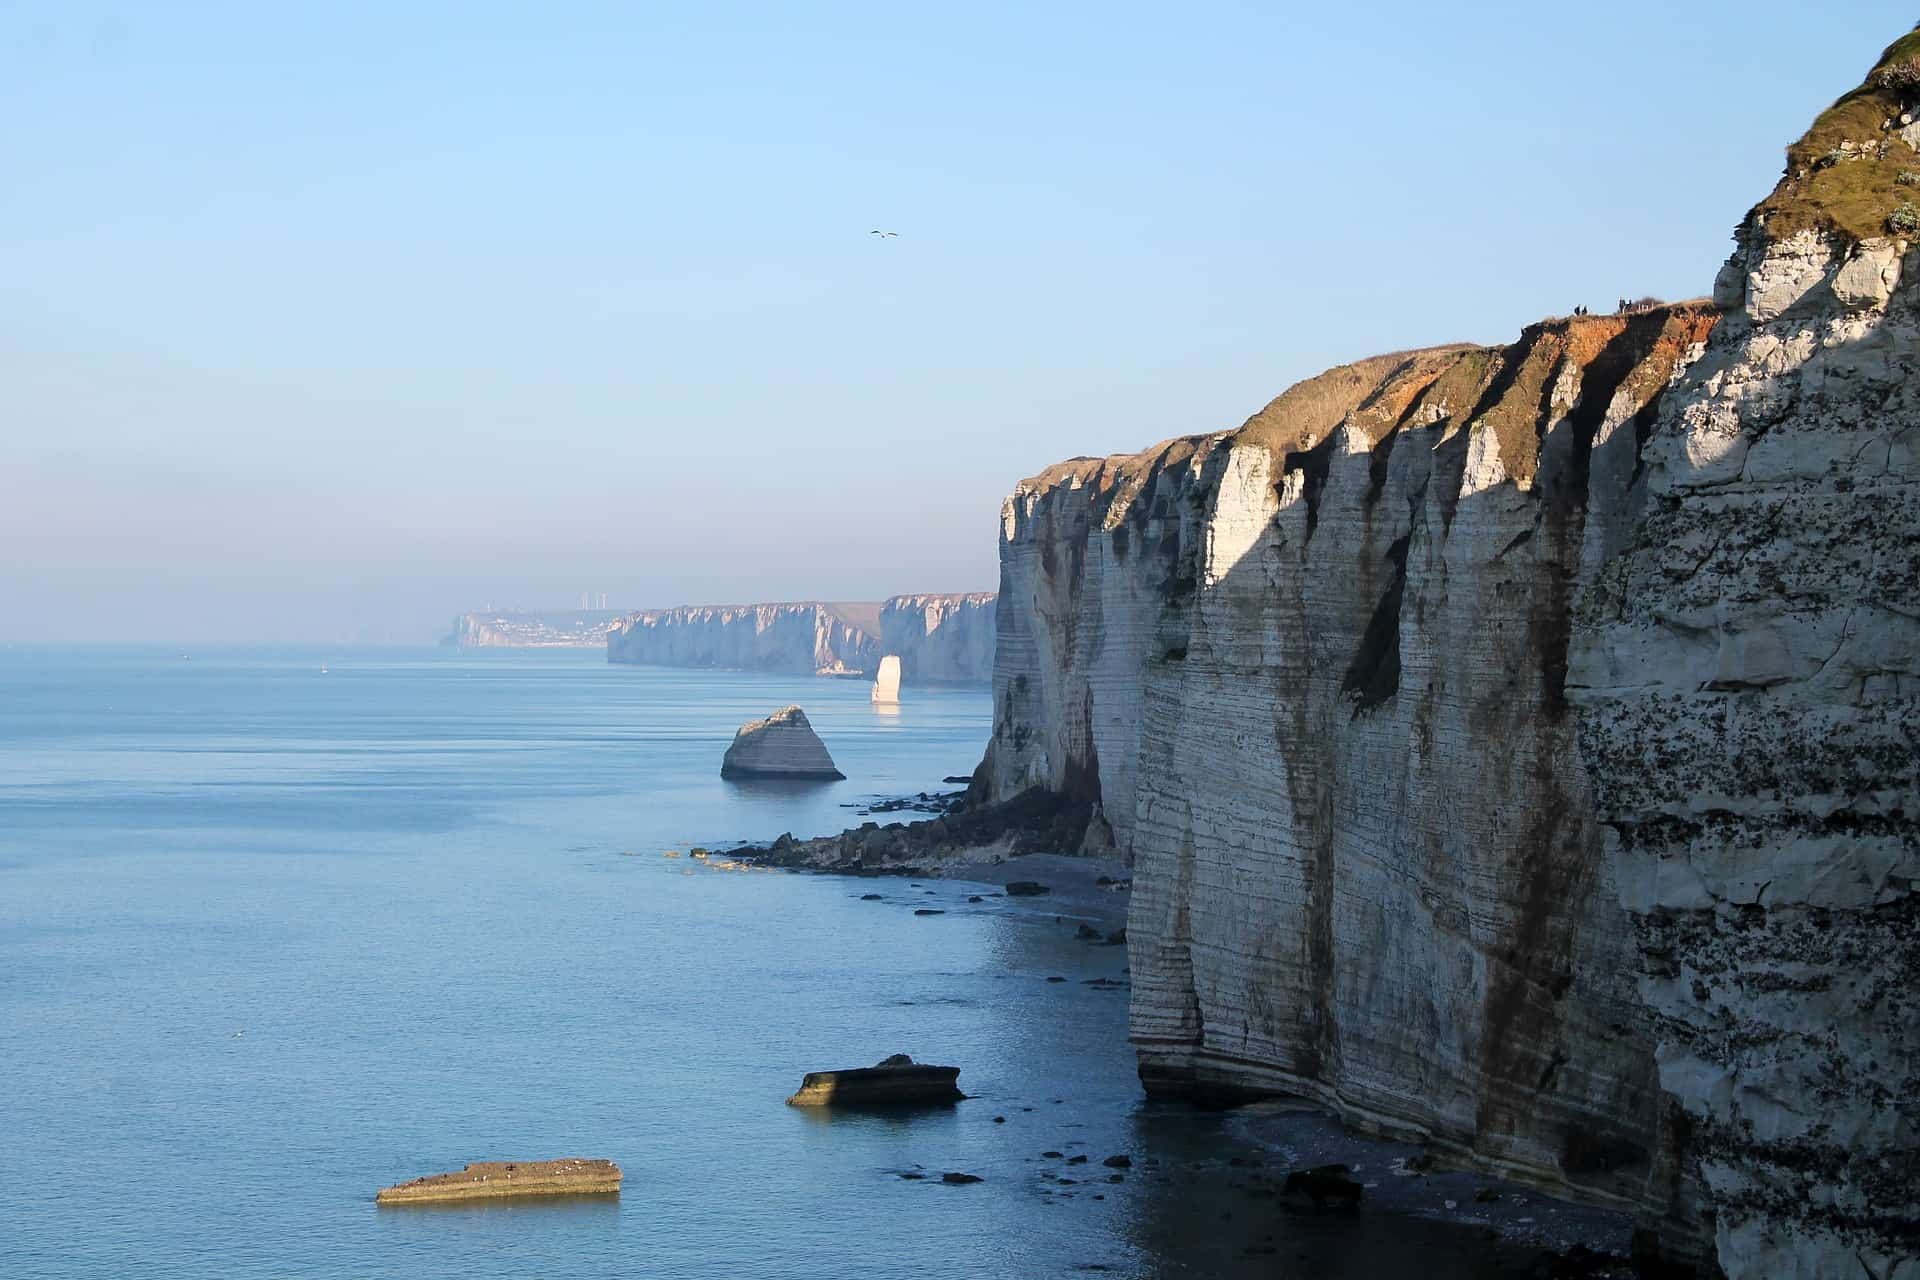 Just a couple of hours away from Paris and a perfect day trip get away: Dieppe at the Alabaster coast in Normandie